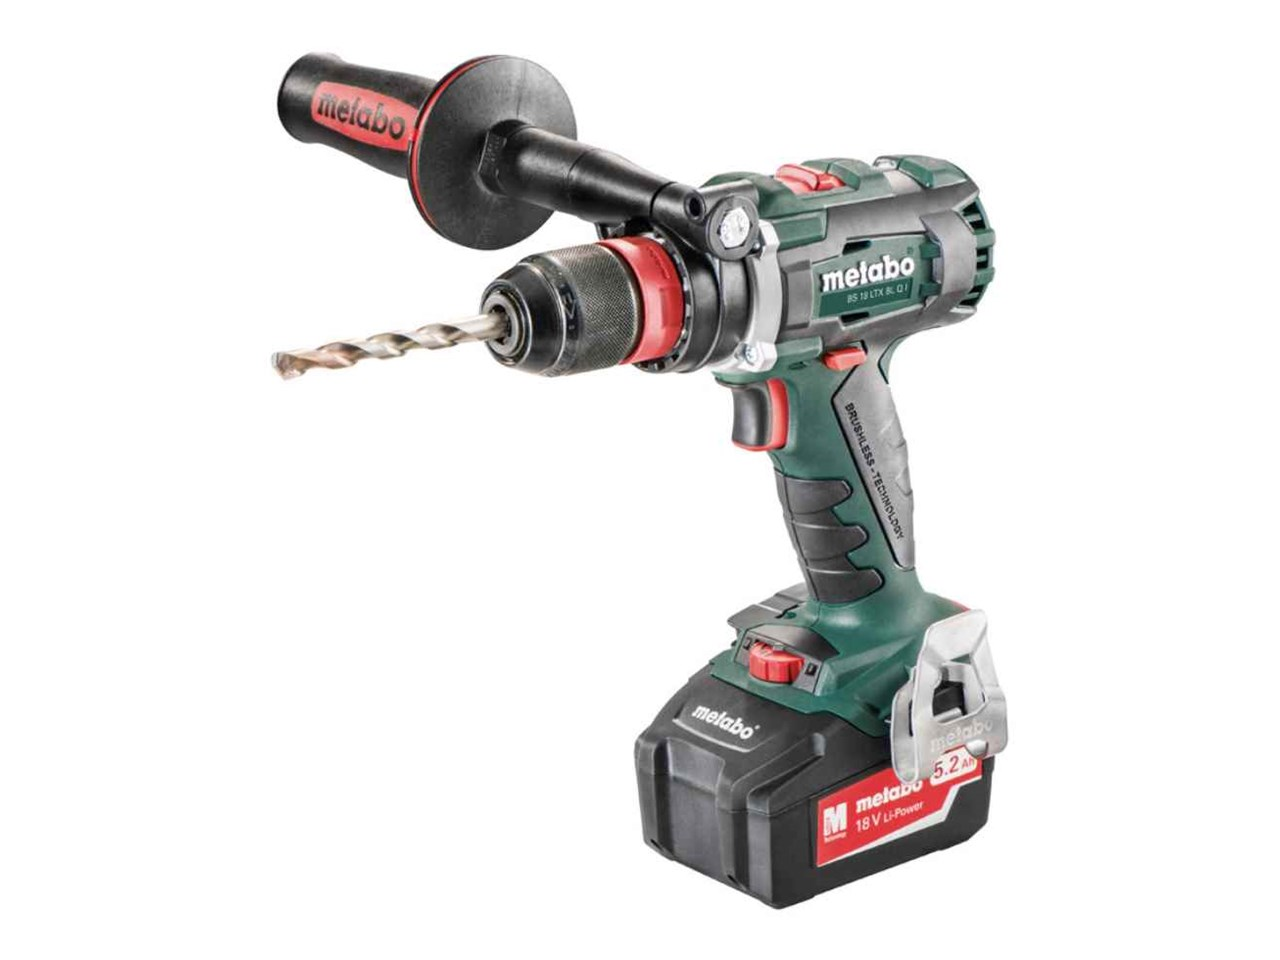 metabo bs18 ltx blqi 18v 2x5 5ah lihd brushless drill driver kit. Black Bedroom Furniture Sets. Home Design Ideas